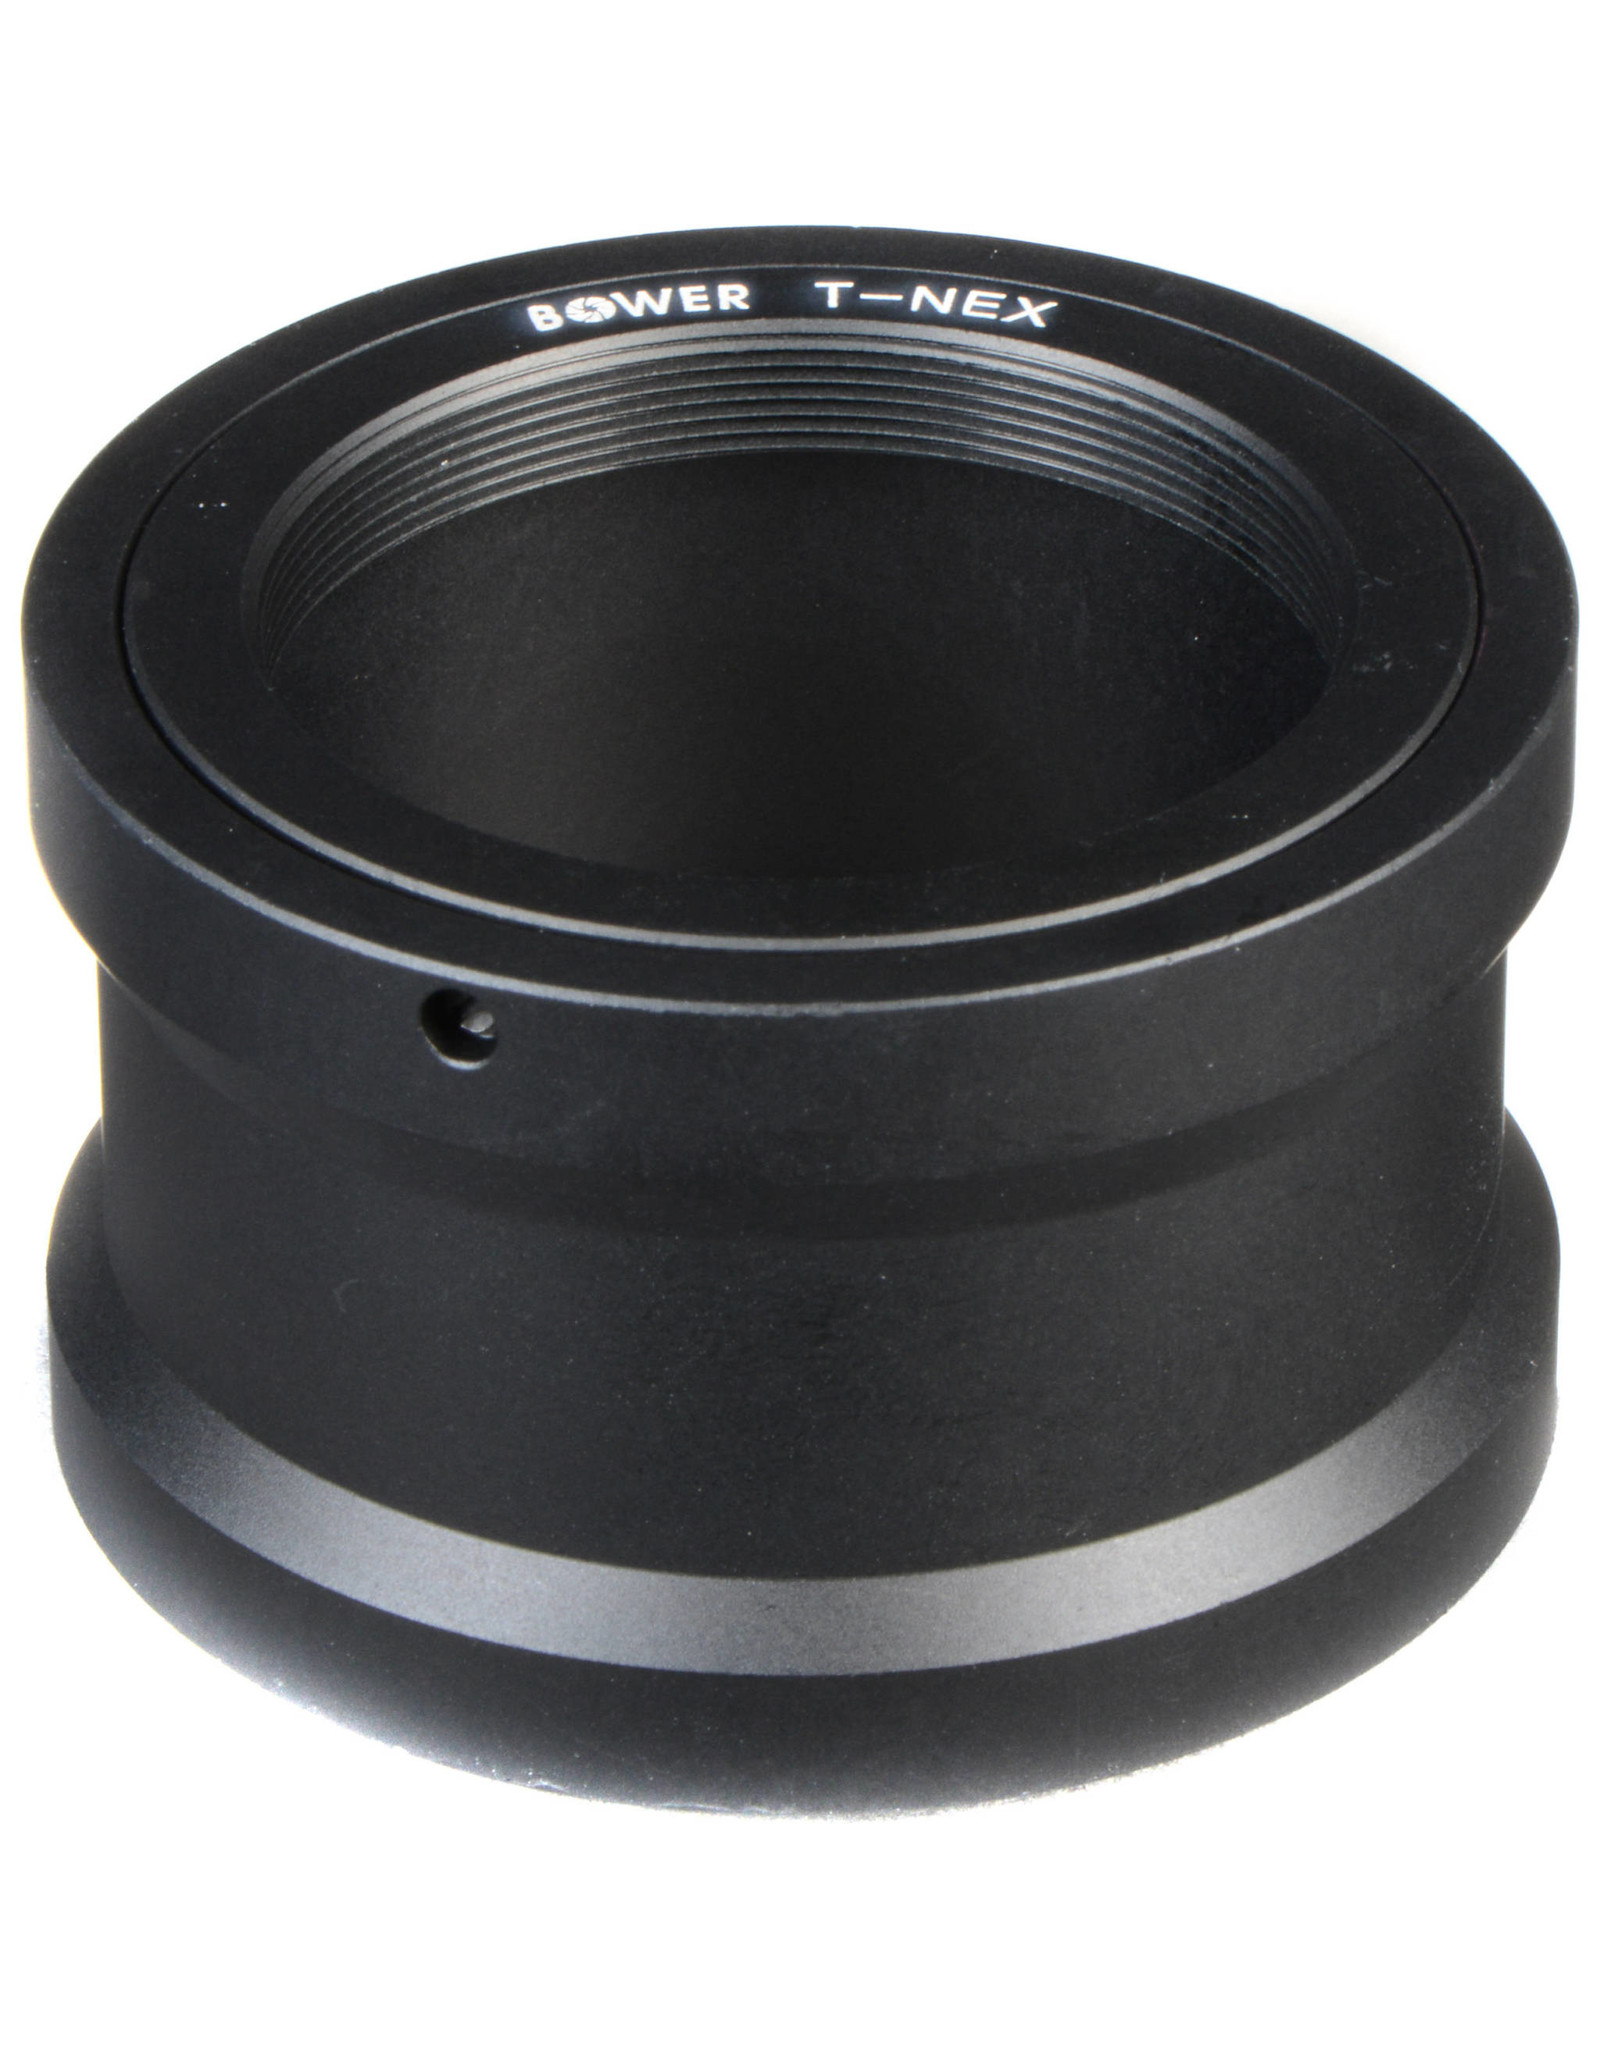 Bower T-Mount Sony E